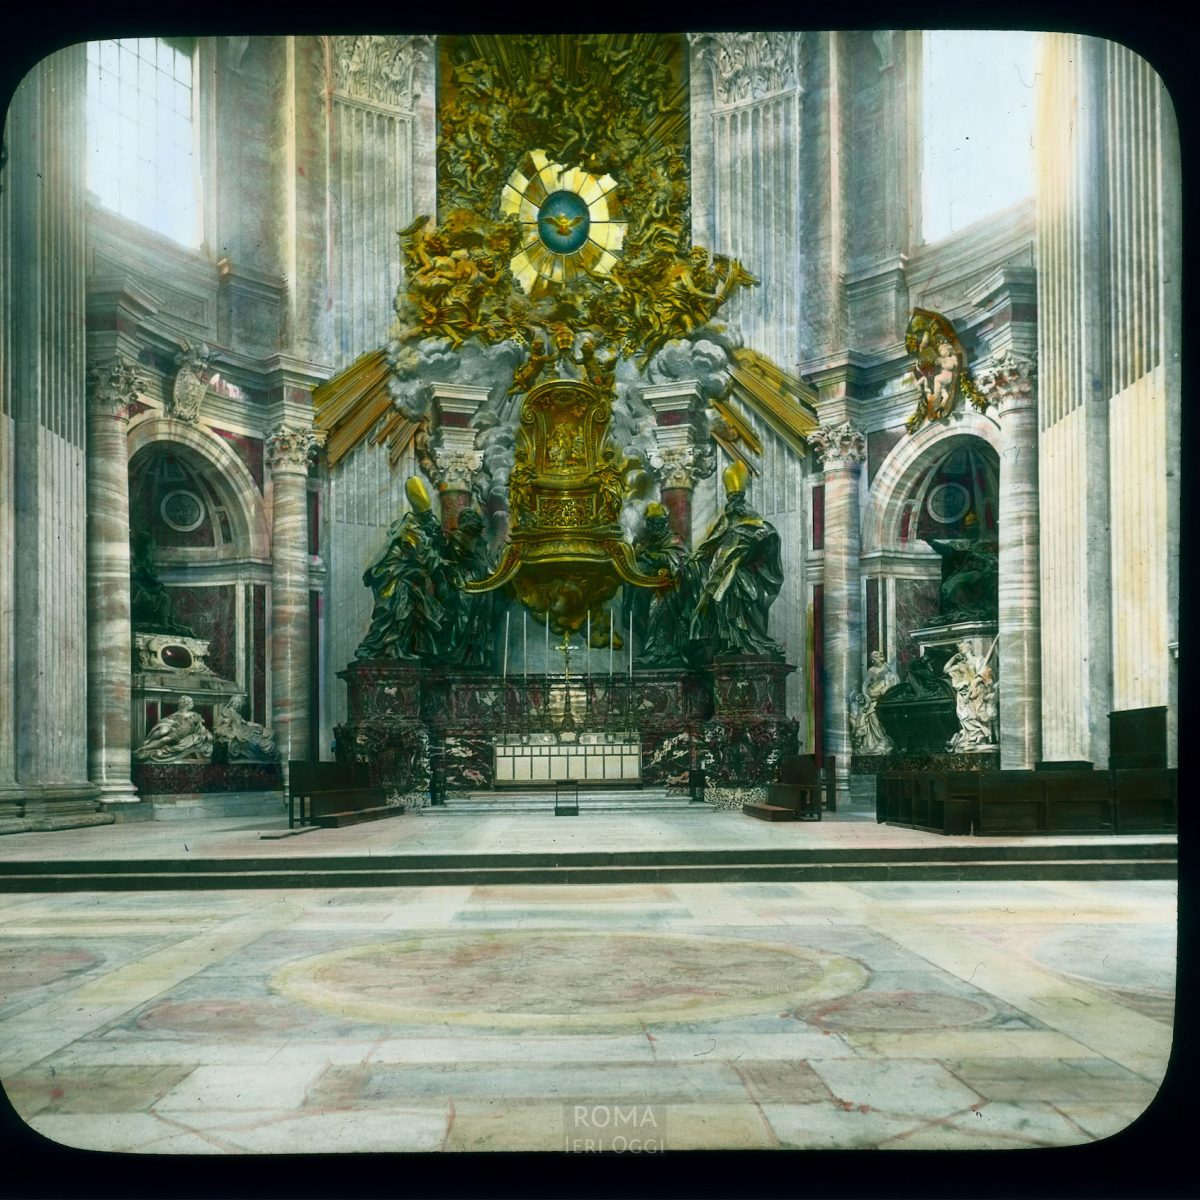 Vatican City. St. Peter's Basilica: interior, Chair of St. Peter (reliquary by Bernini, 1647-53) View in tinted lantern slide, ca. 1919-1938. The basilica dates from ca. 1506-1626.